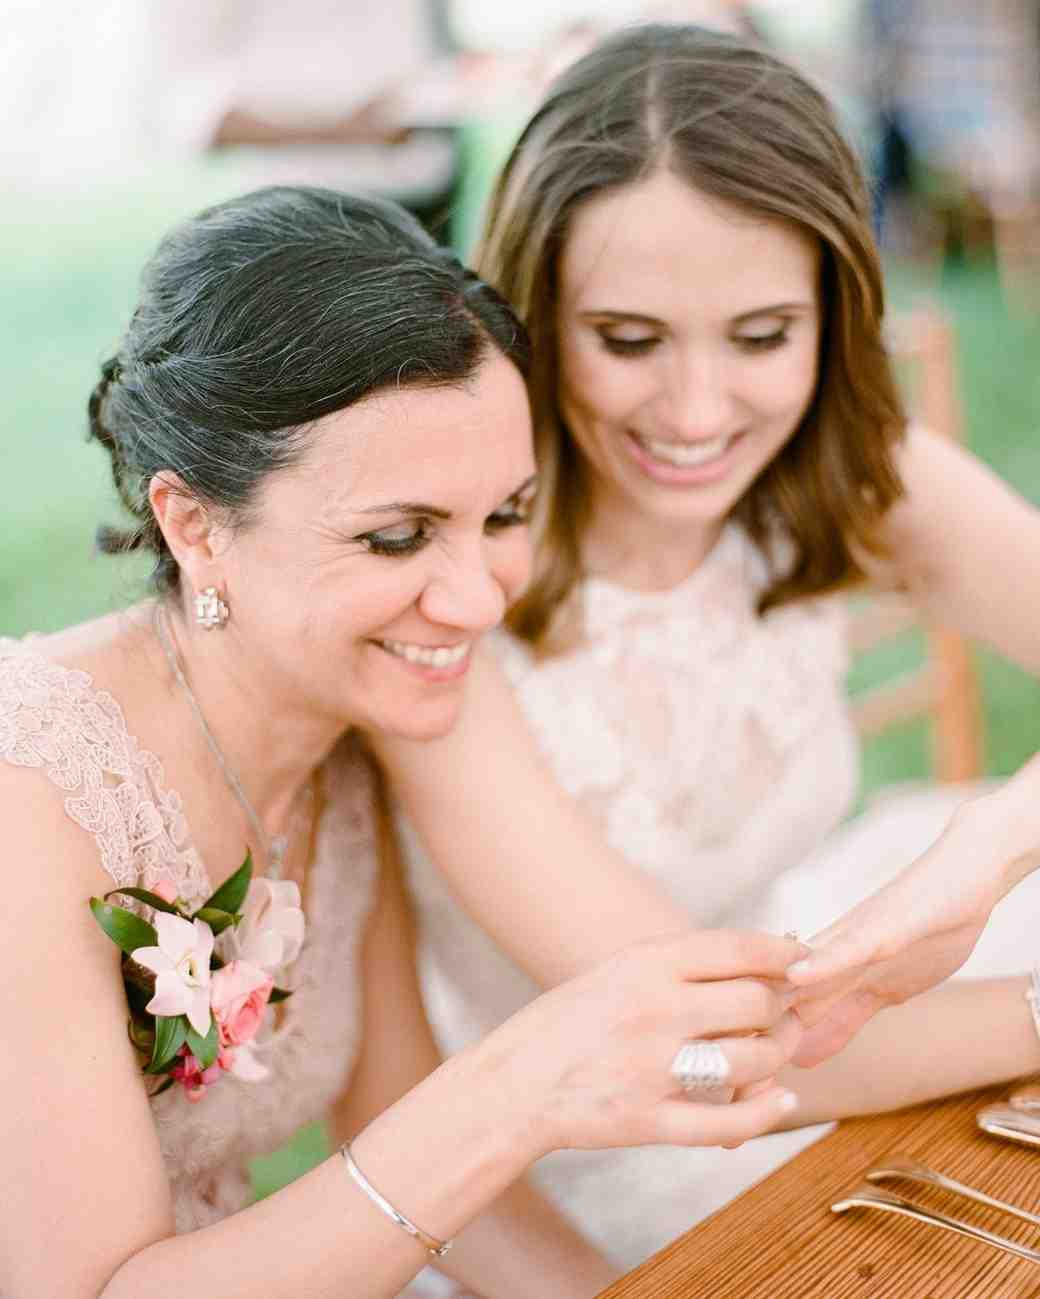 A Mother and Daughter Looking at Her Wedding Ring